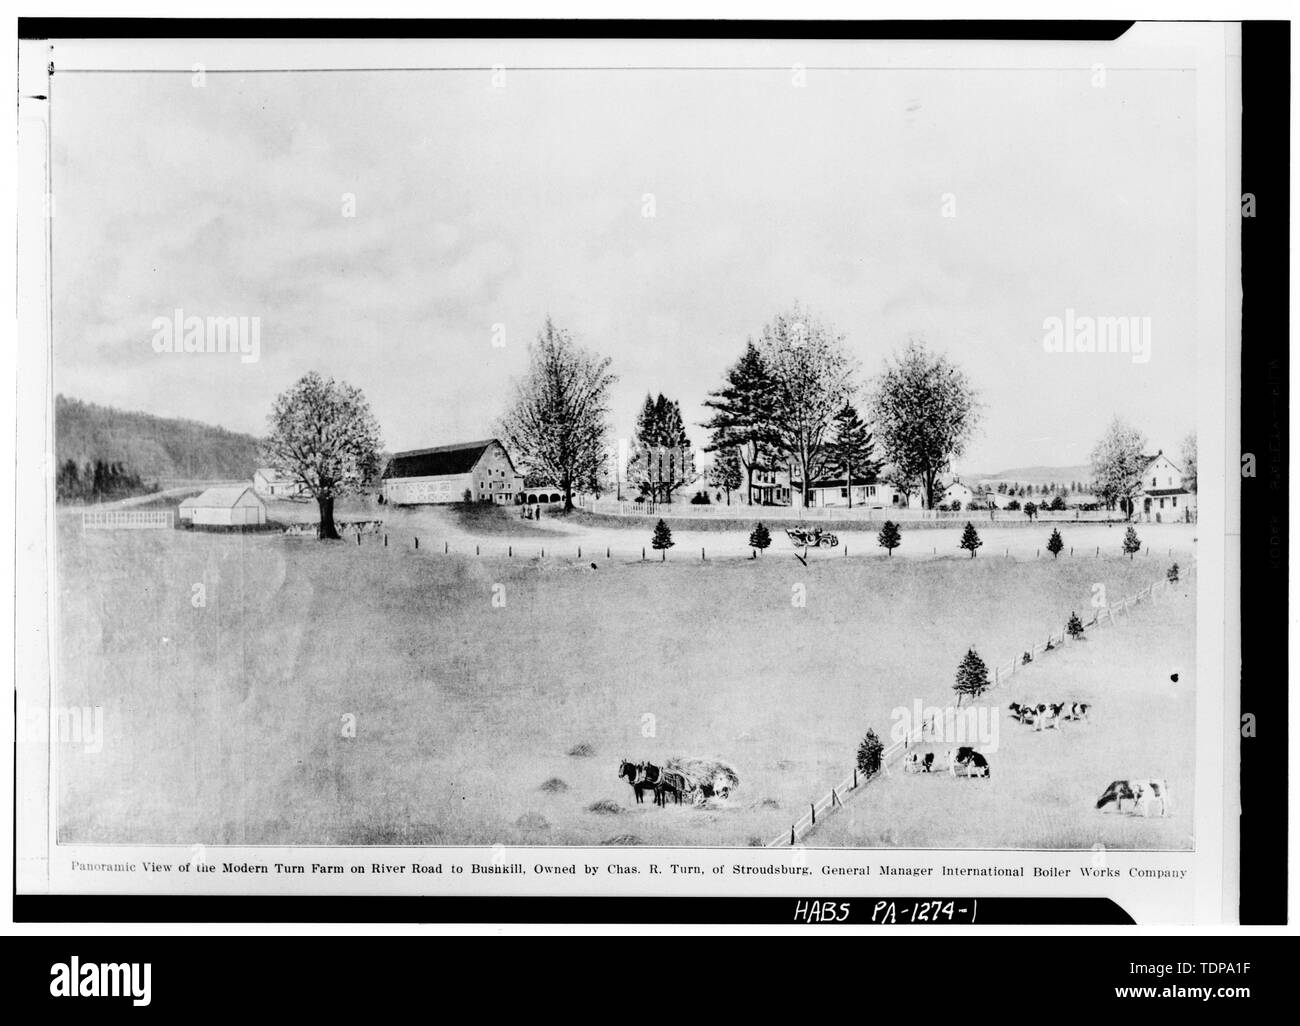 Photocopy of delineation circa 1910 from The Bells Ringing the Message of Progress in Monroe County, Pa. 1915, pp. 96-7 GENERAL VIEW OF FARM - John Turn Farm, River Road (Middle Smithfield Township), Shawnee on Delaware, Monroe County, PA - Stock Image